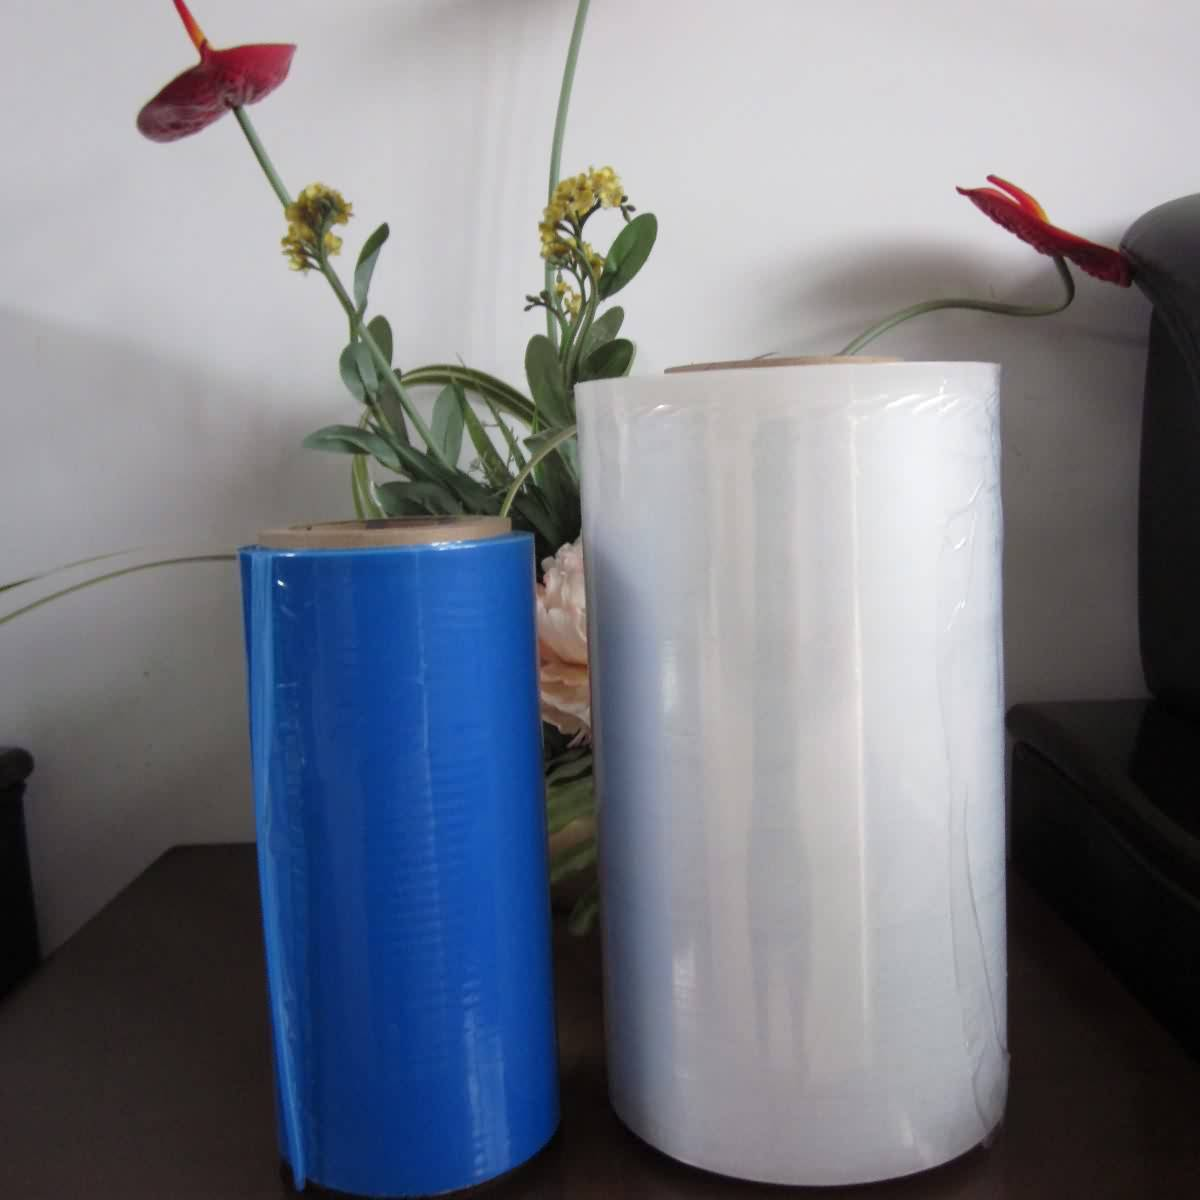 OEM/ODM Supplier VCI stretch film for Bangladesh Manufacturers